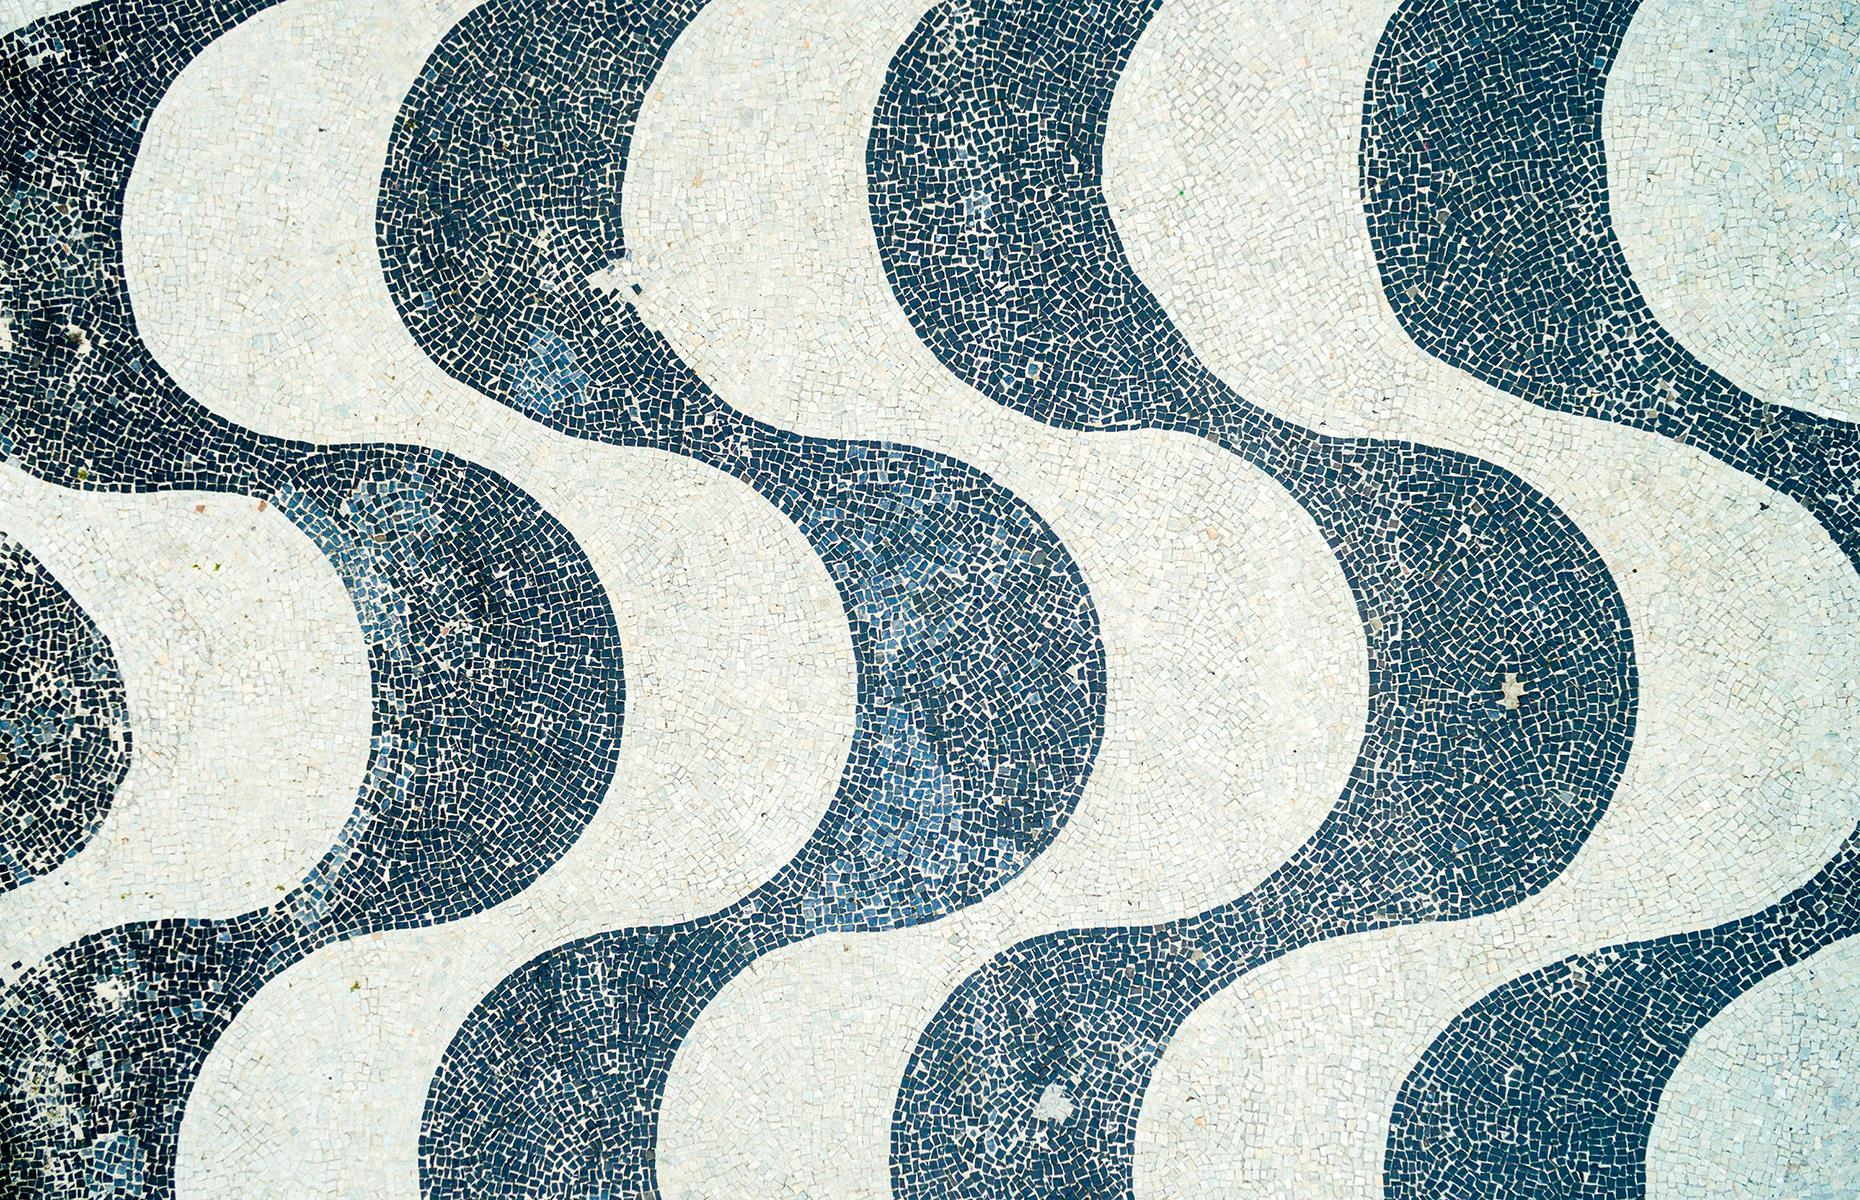 Slide 32 of 53: Located in Brazil's second-largest city, these tiles form a promenade along one of the most famous beaches in the world. Designed by Roberto Burle Marx, the promenade was first built in the 1930s and then restored in 1970.